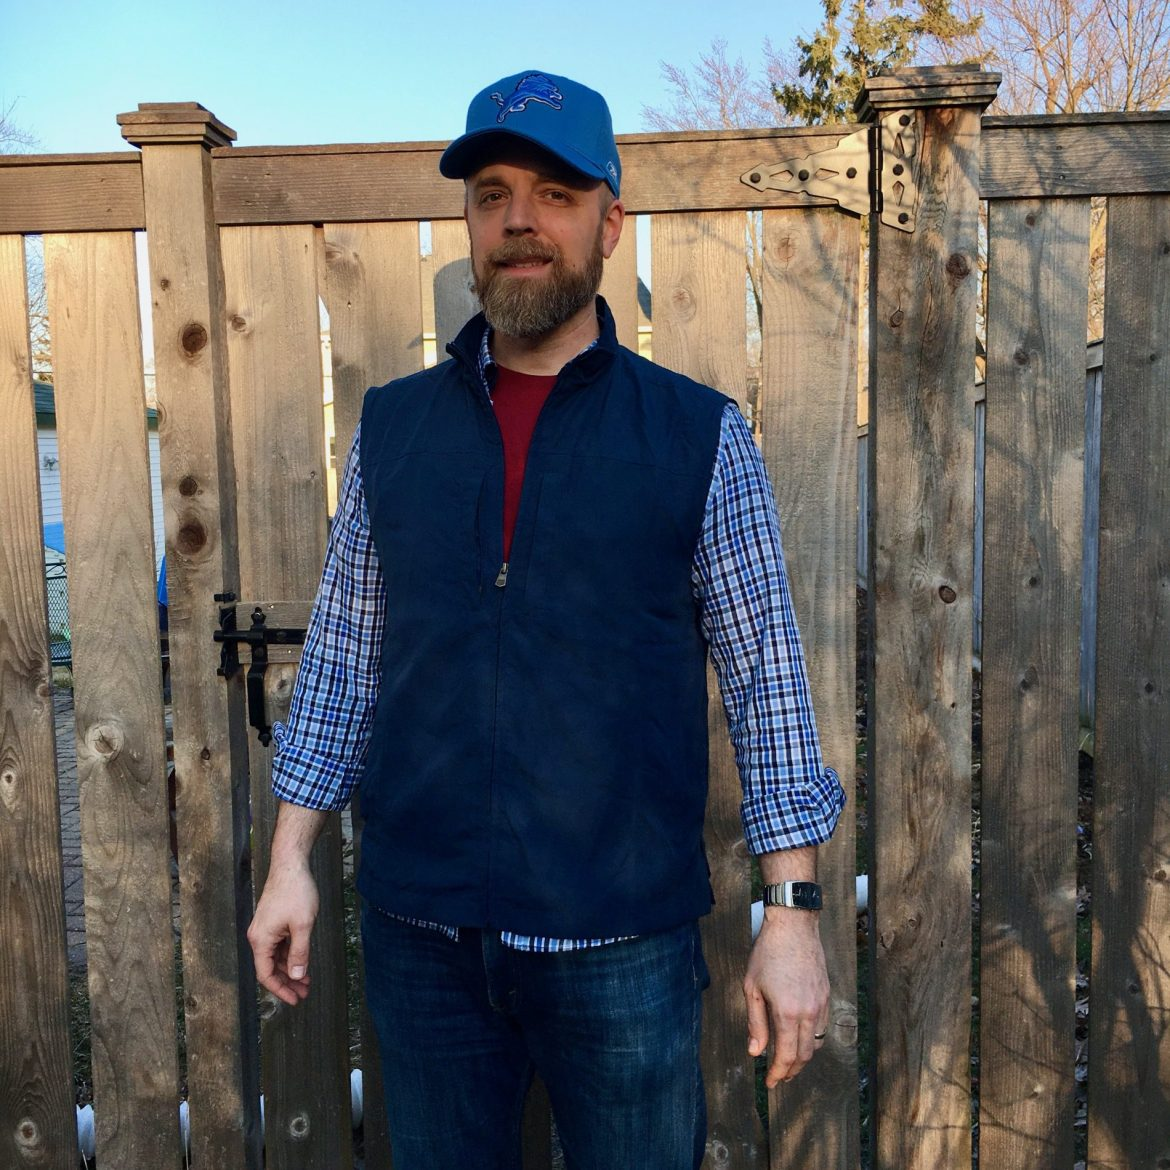 Get ready for warmer weather – and being able to leave your house – with the SCOTTeVEST RFID Travel Vest